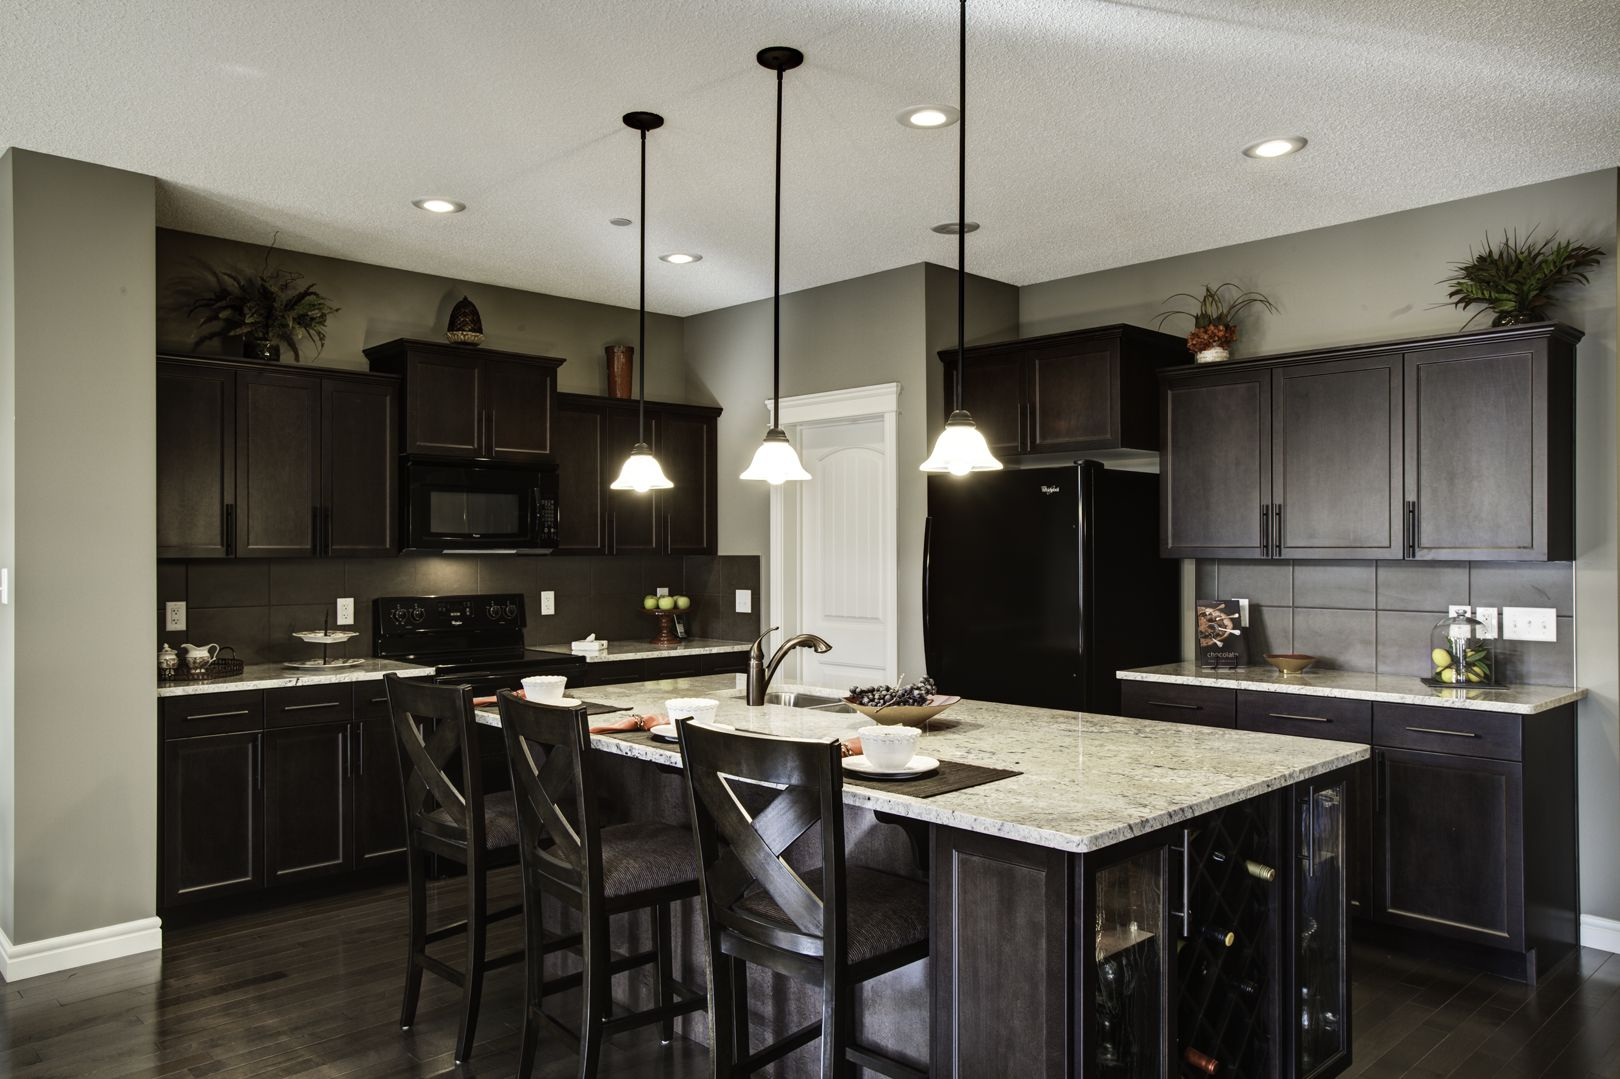 Great Kitchen The Kristana Show Home Great Kitchen Kitchens And Eating